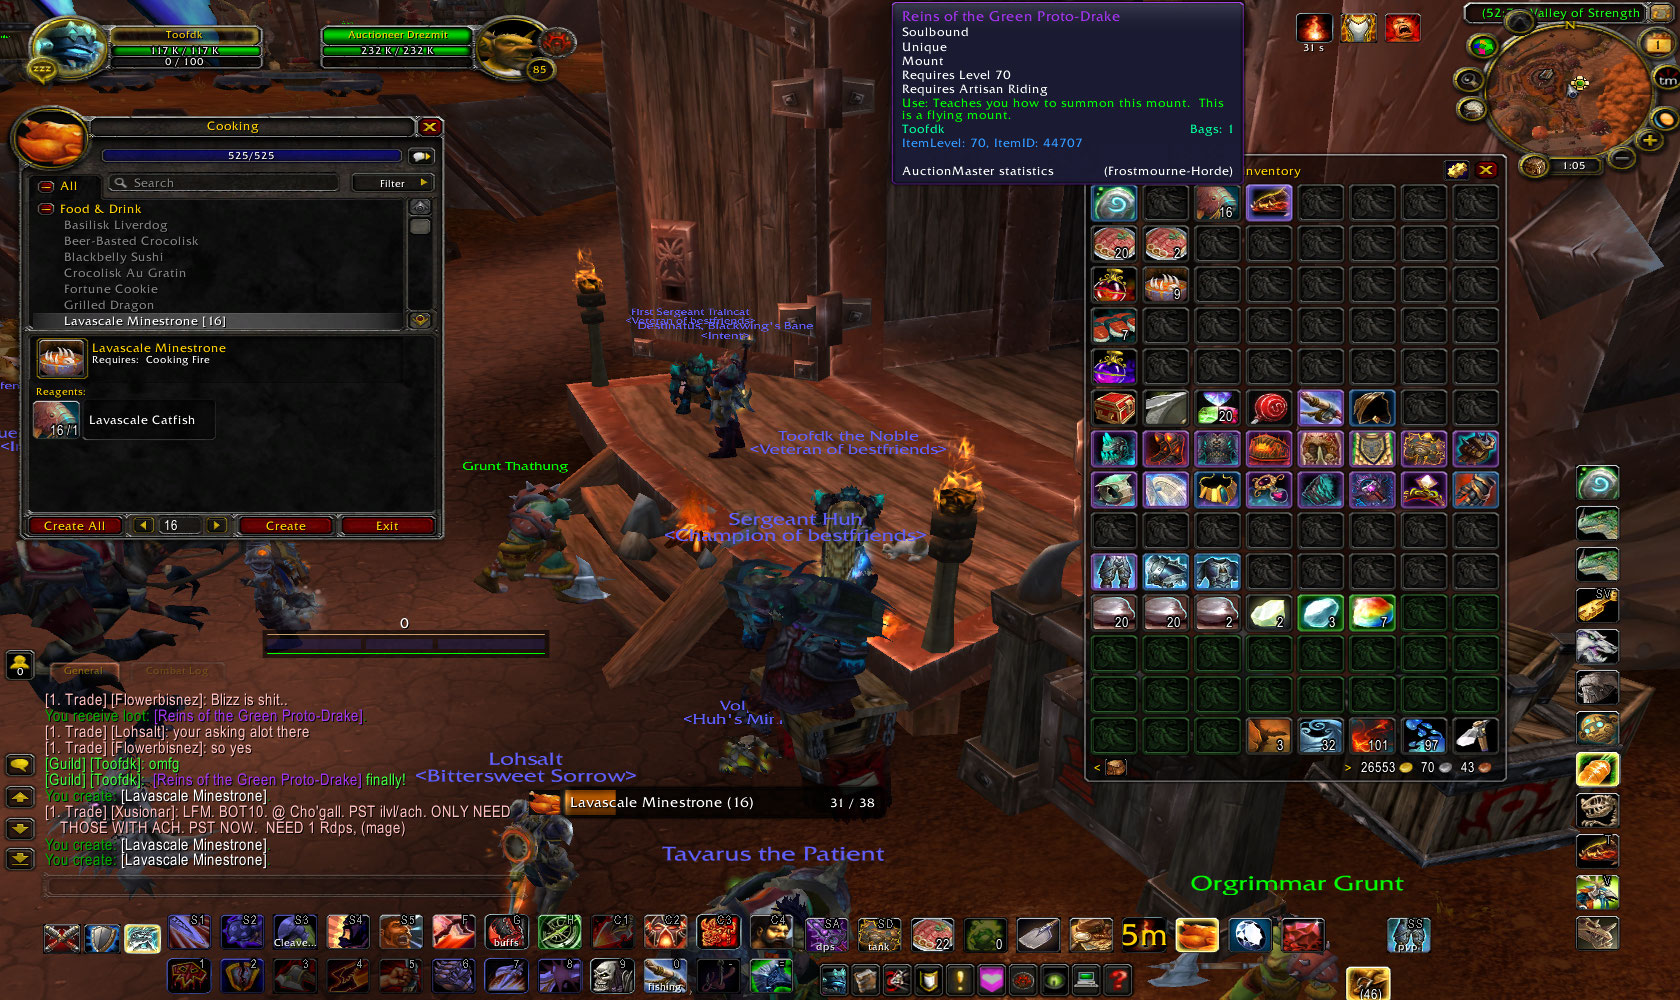 dazd games this first continue mount reputation grind completed that today dropped when pairs acquisition achievement hopped about forgot accomplishment thread completely over bought picked recent different drake missing netherwing